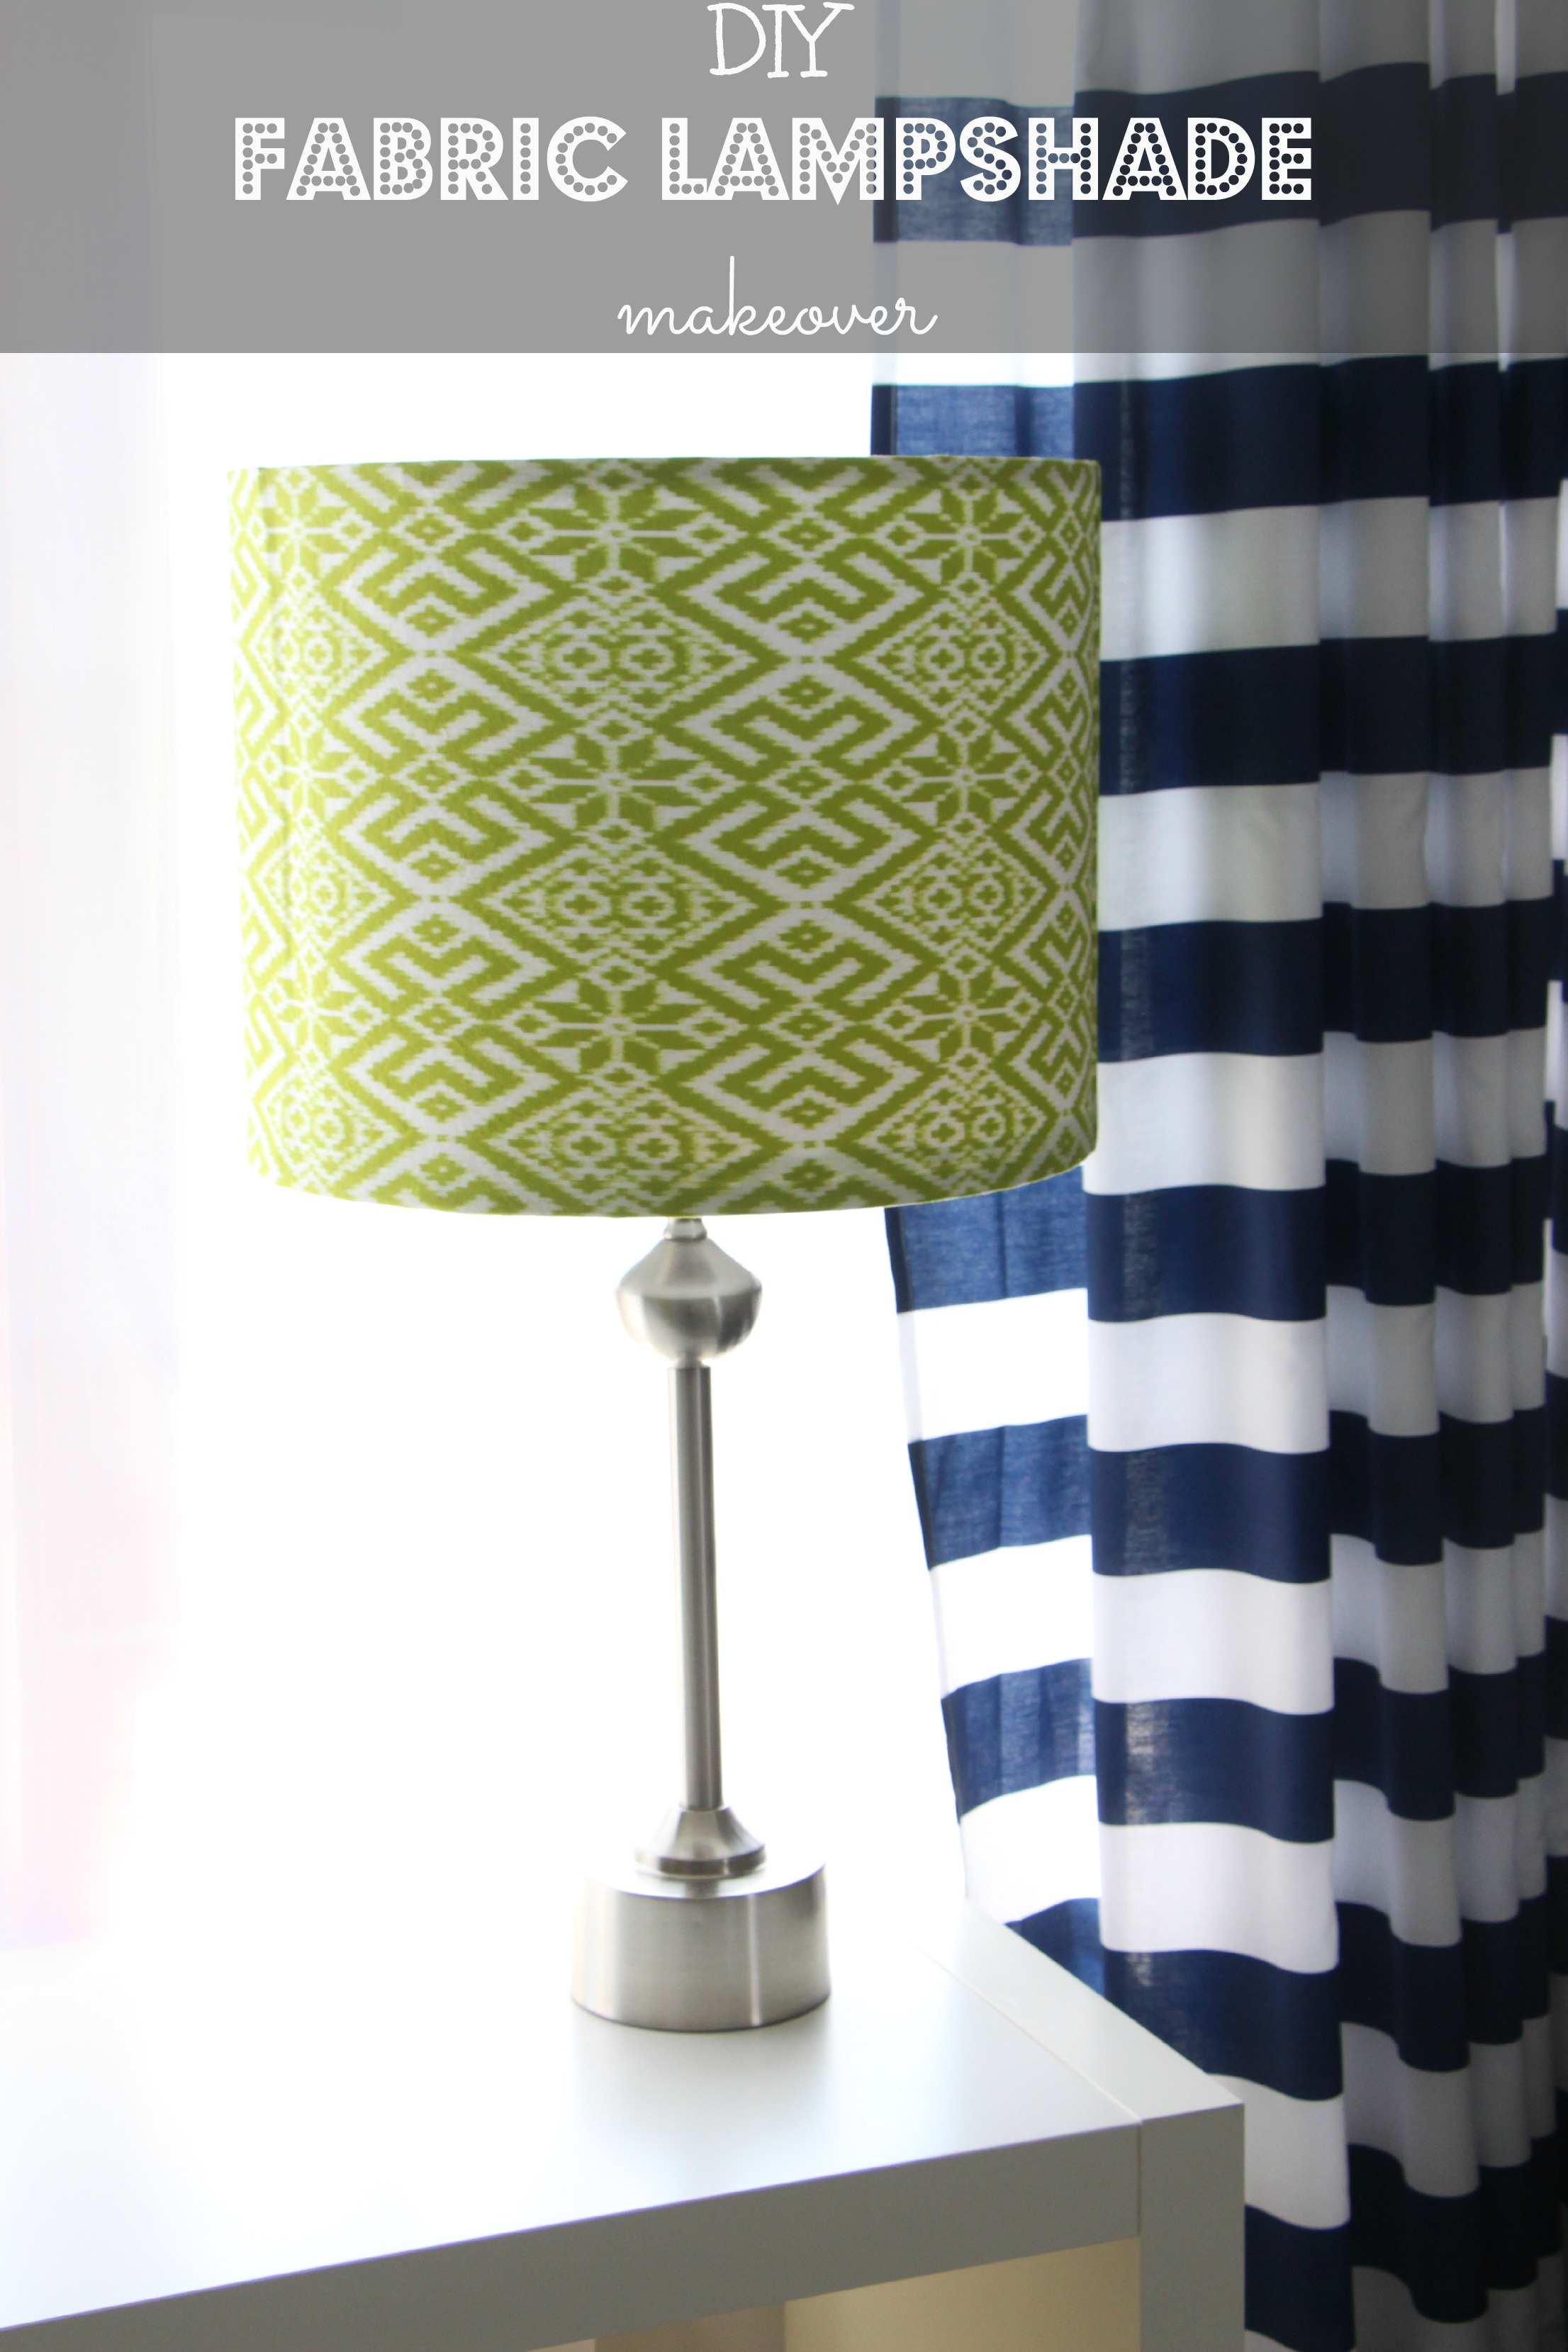 How To Diy Fabric Lampshade This Is Our Bliss